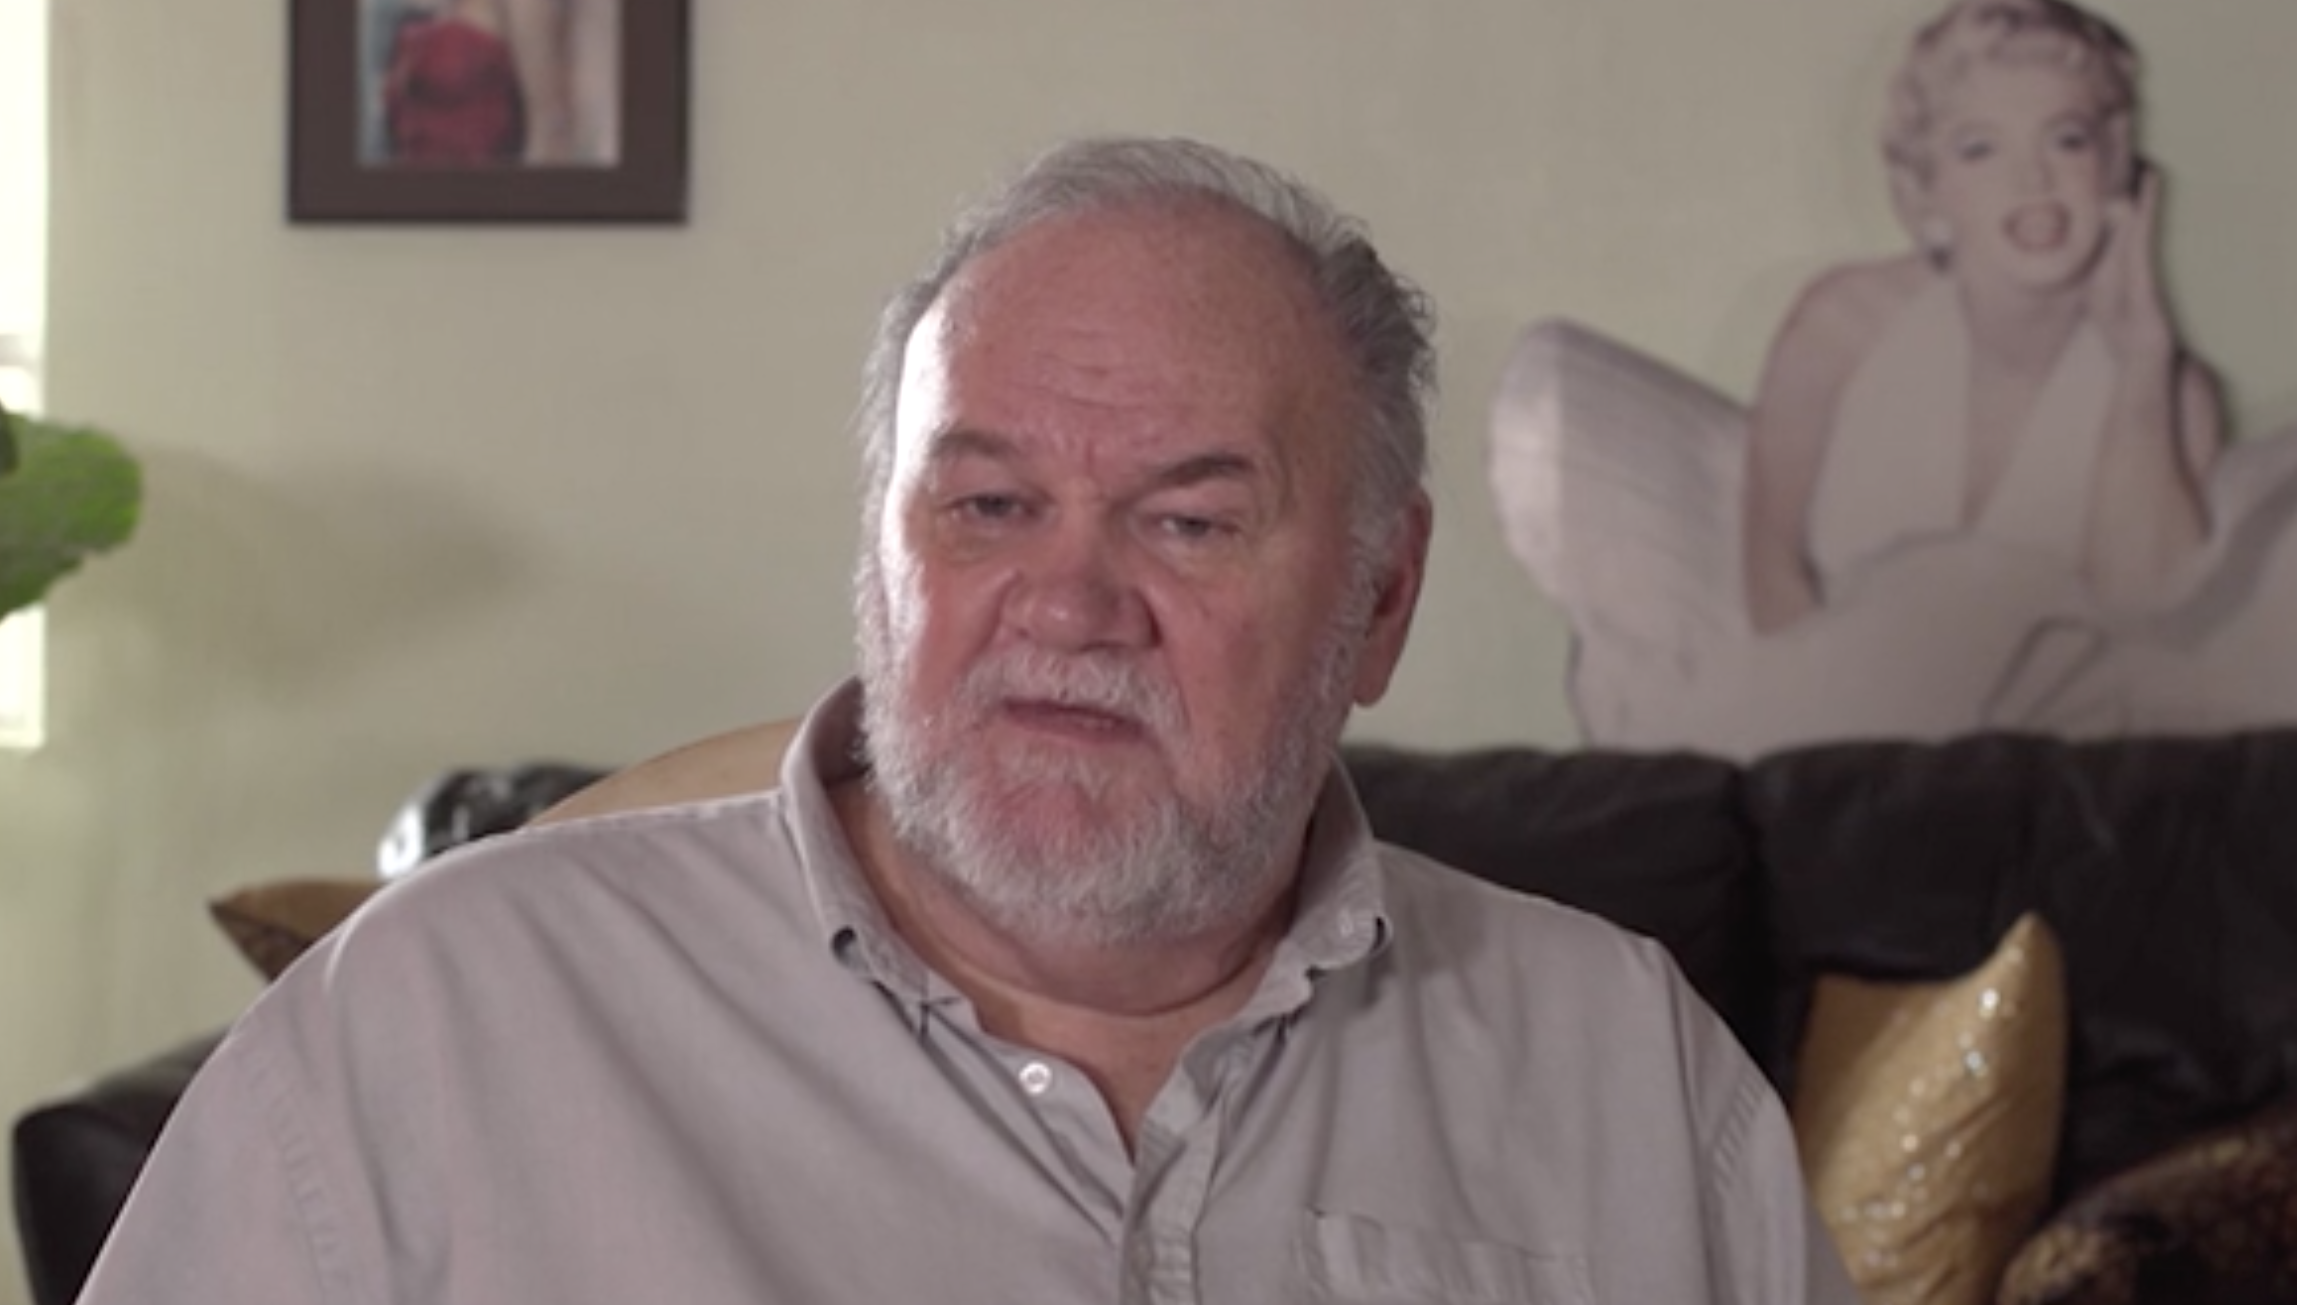 Viewers declare themselves Team Thomas after 'uncomfortable' Thomas Markle: My Story doc